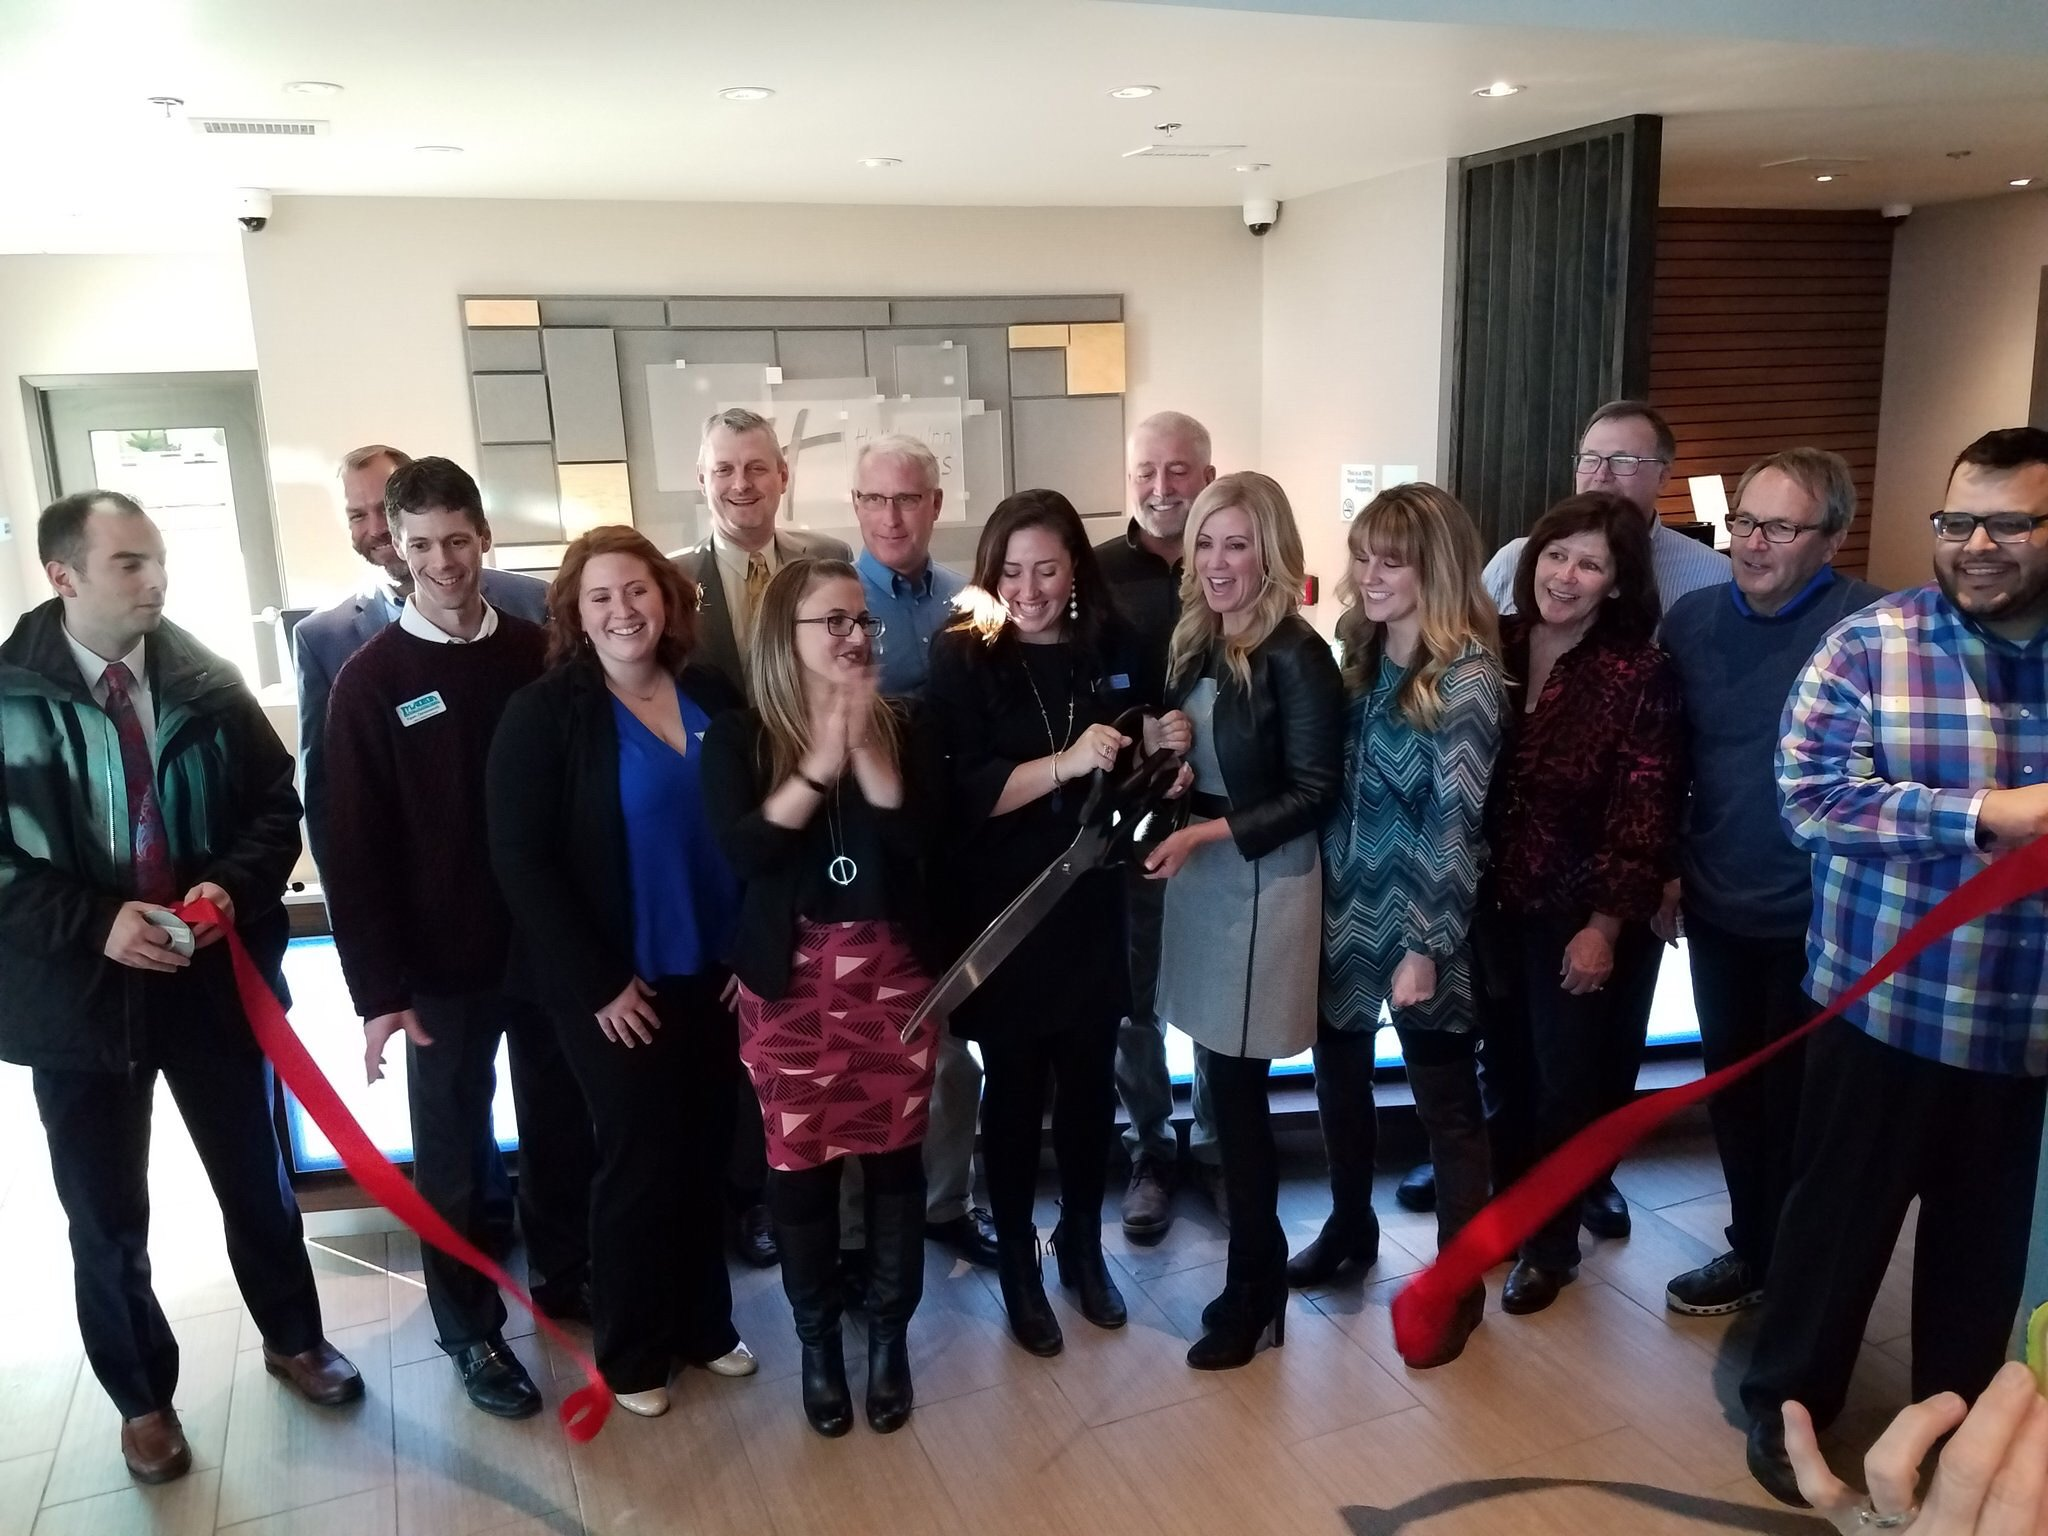 Holiday Inn Express Celebrates Their Grand Opening